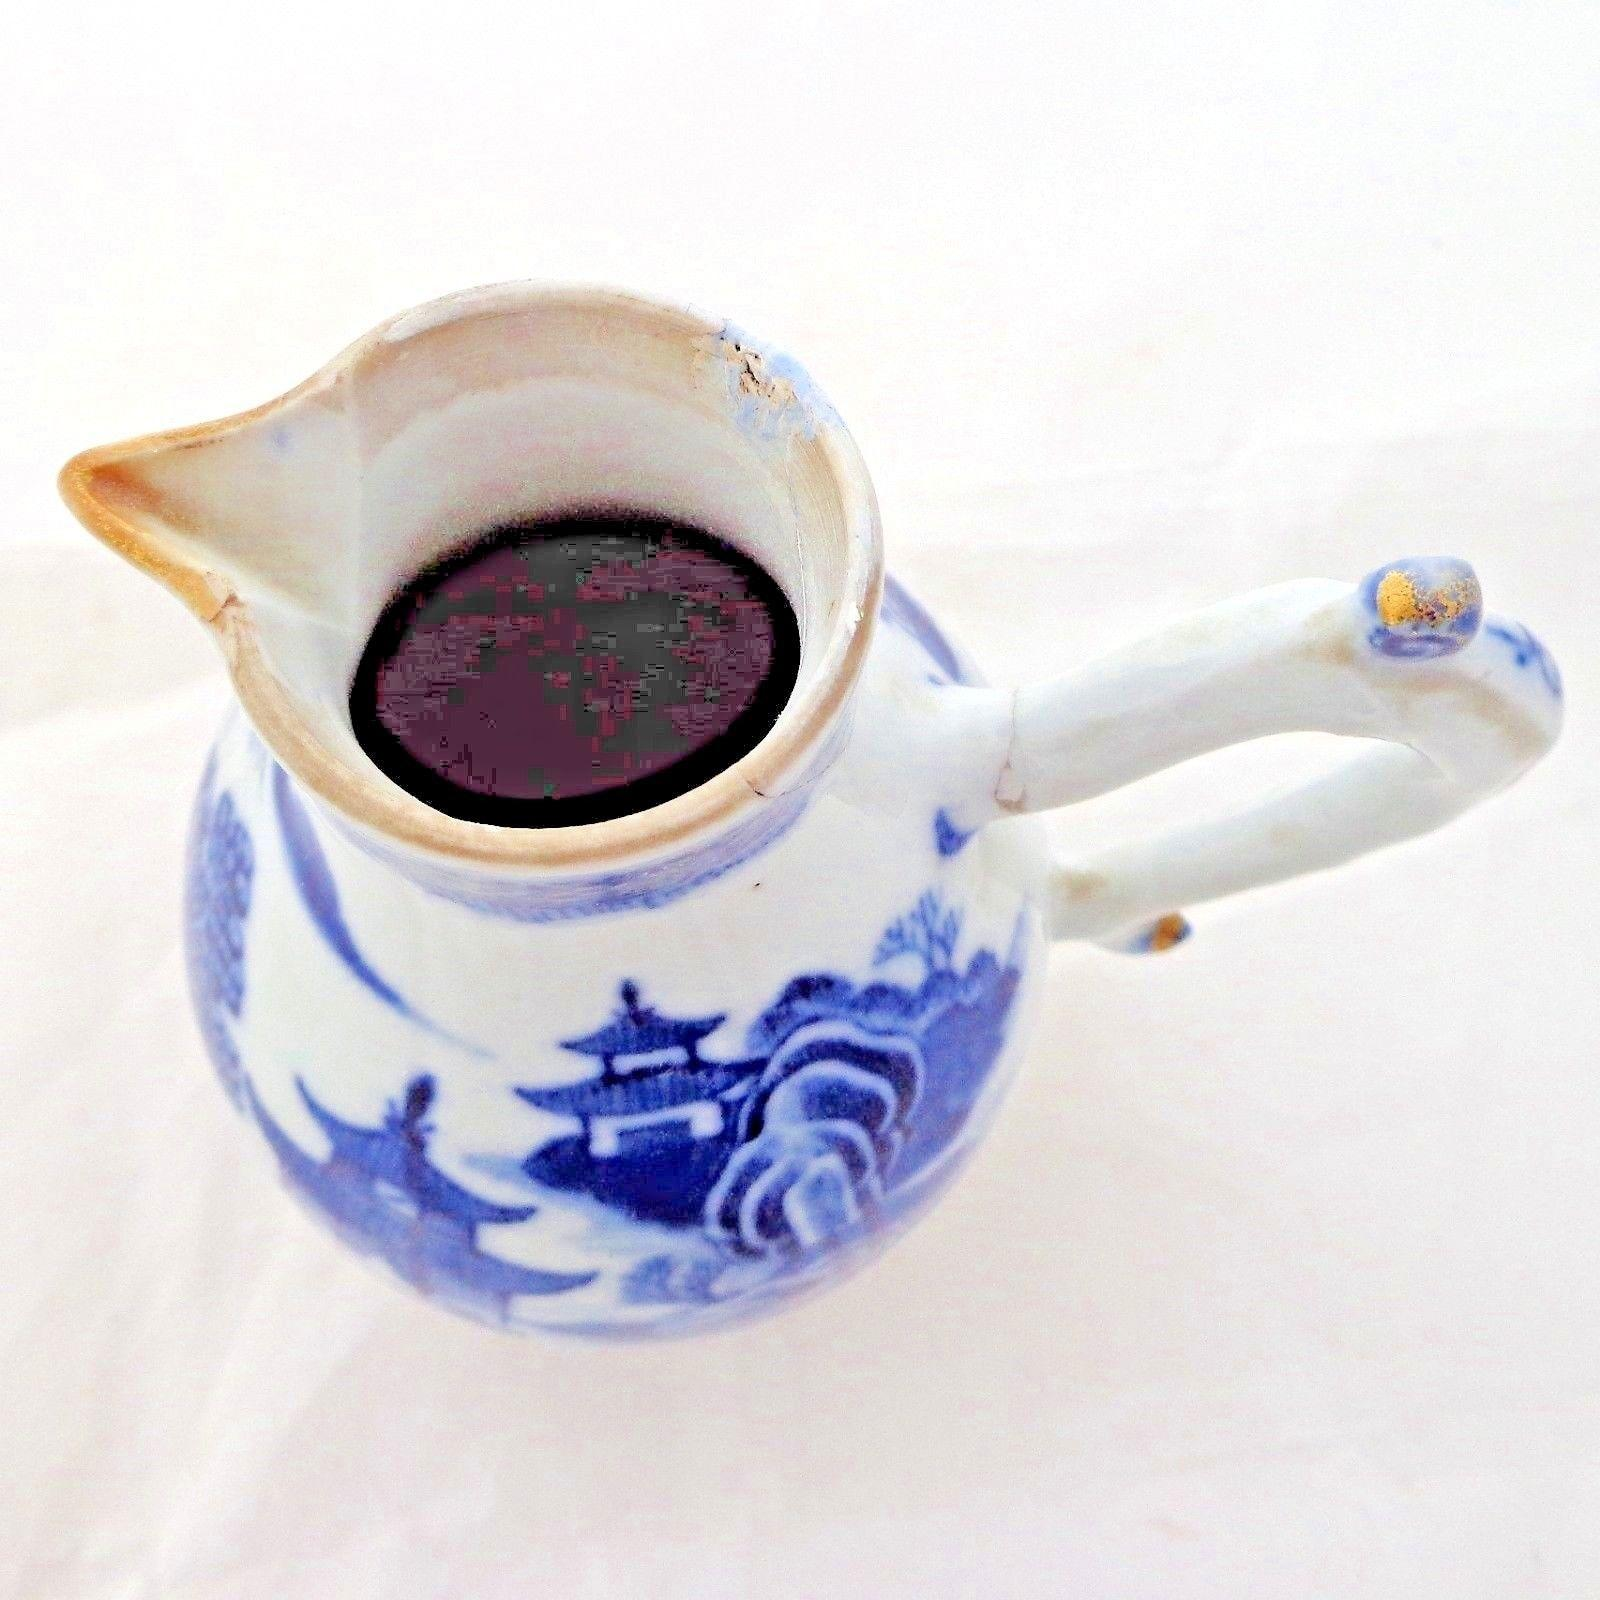 Chinese Porcelain Sparrow Beak Jug HP Blue Qianlong 乾隆 Qing 清代 Antique c 1760